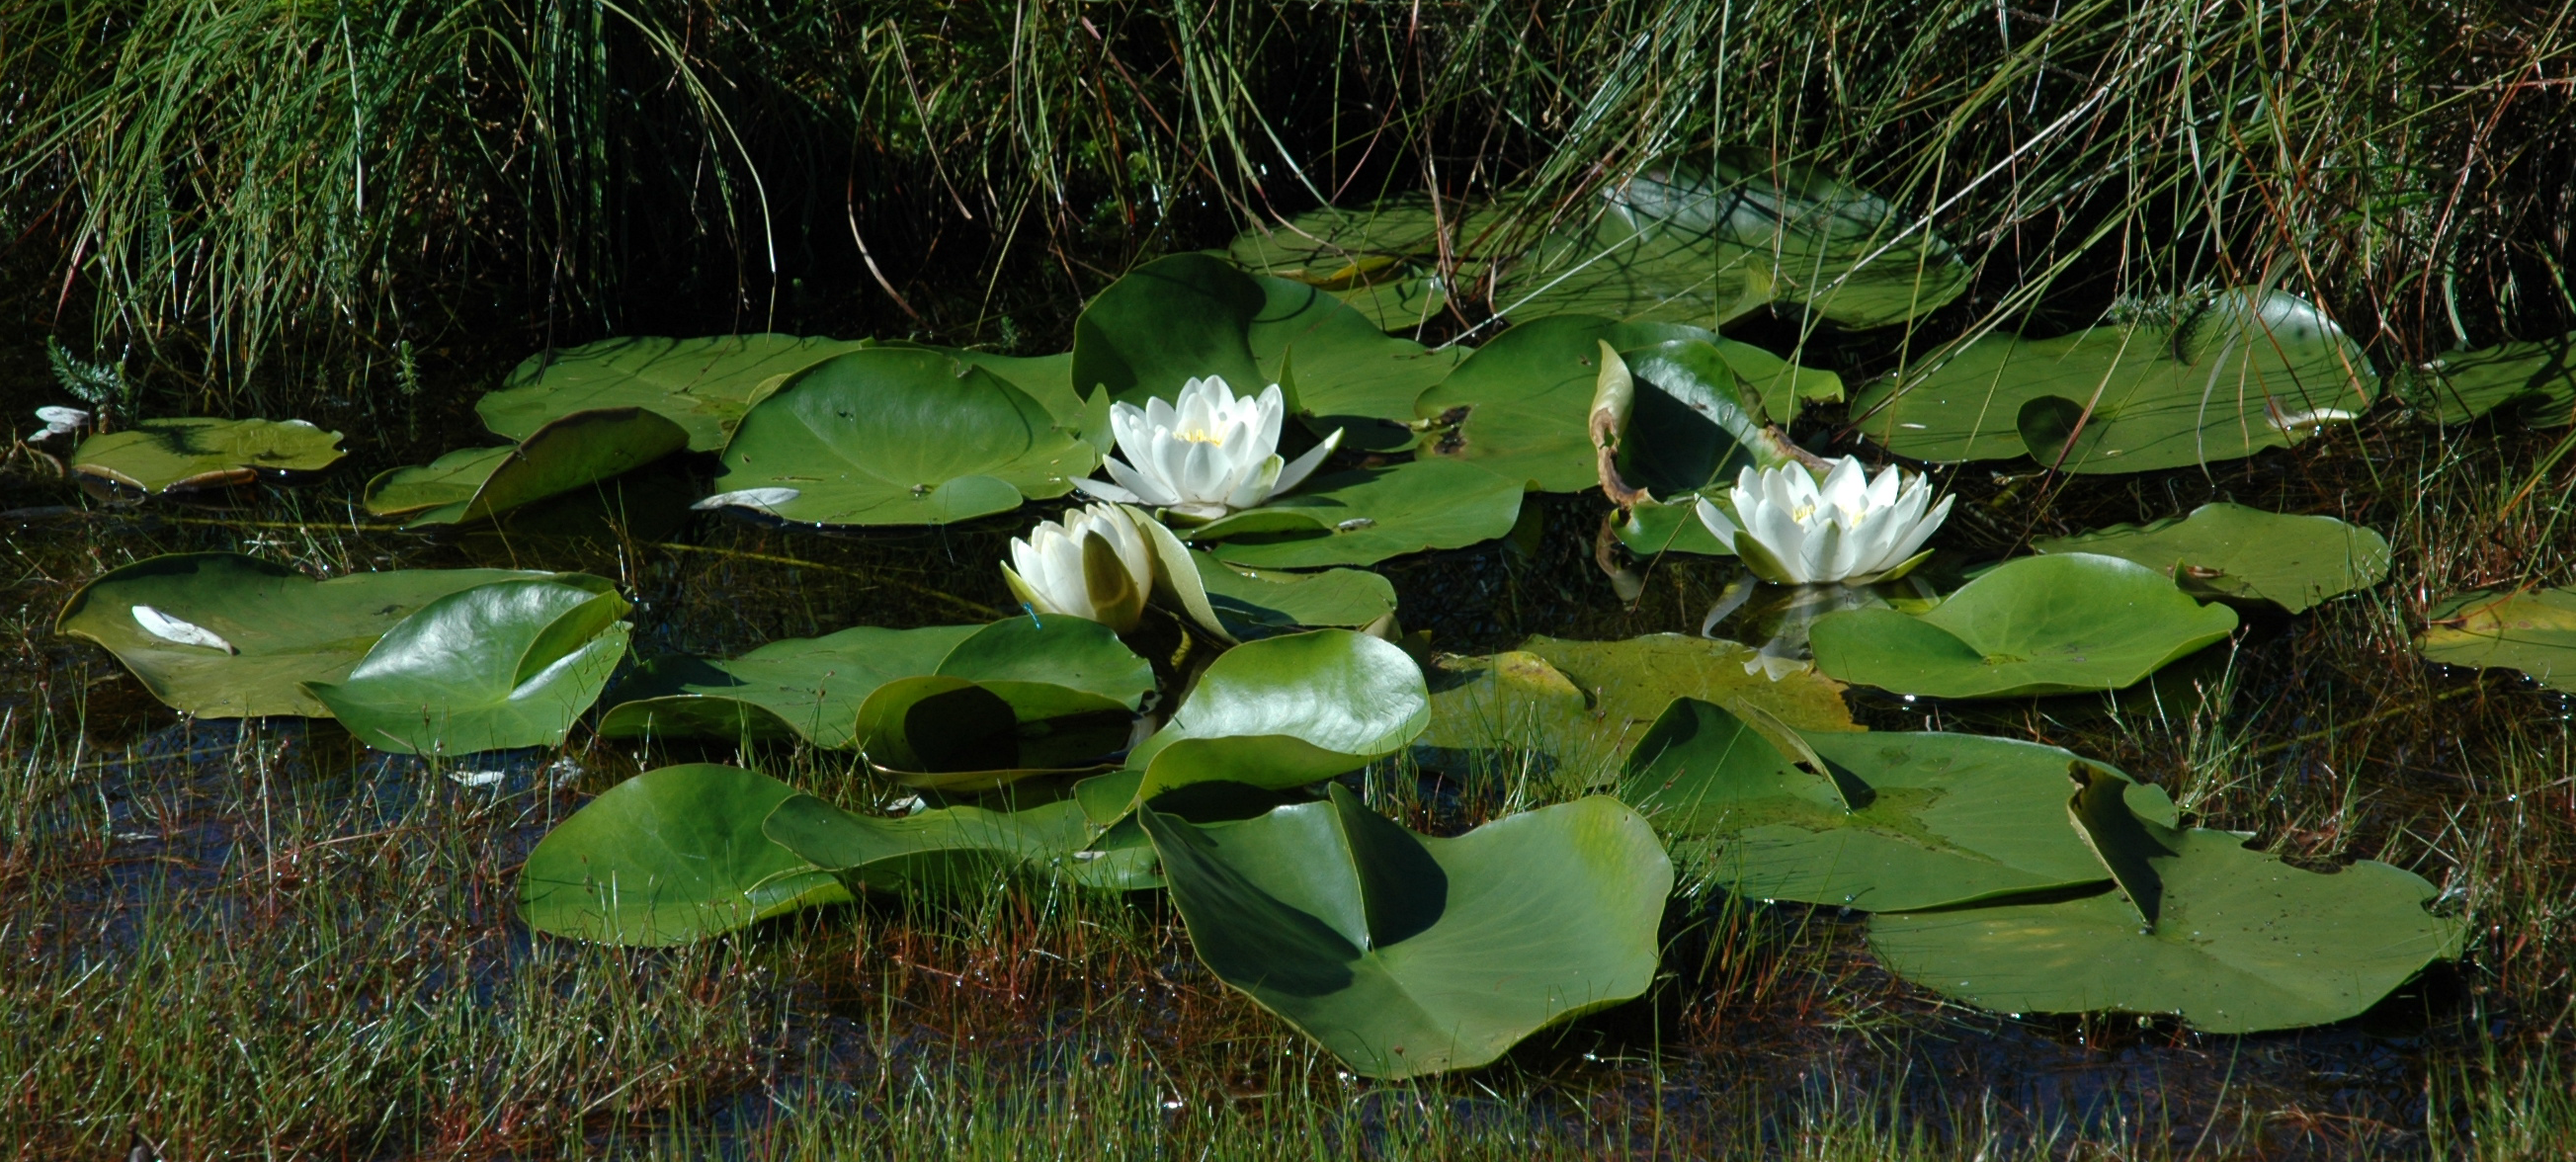 Nymphaea_alba_group.png